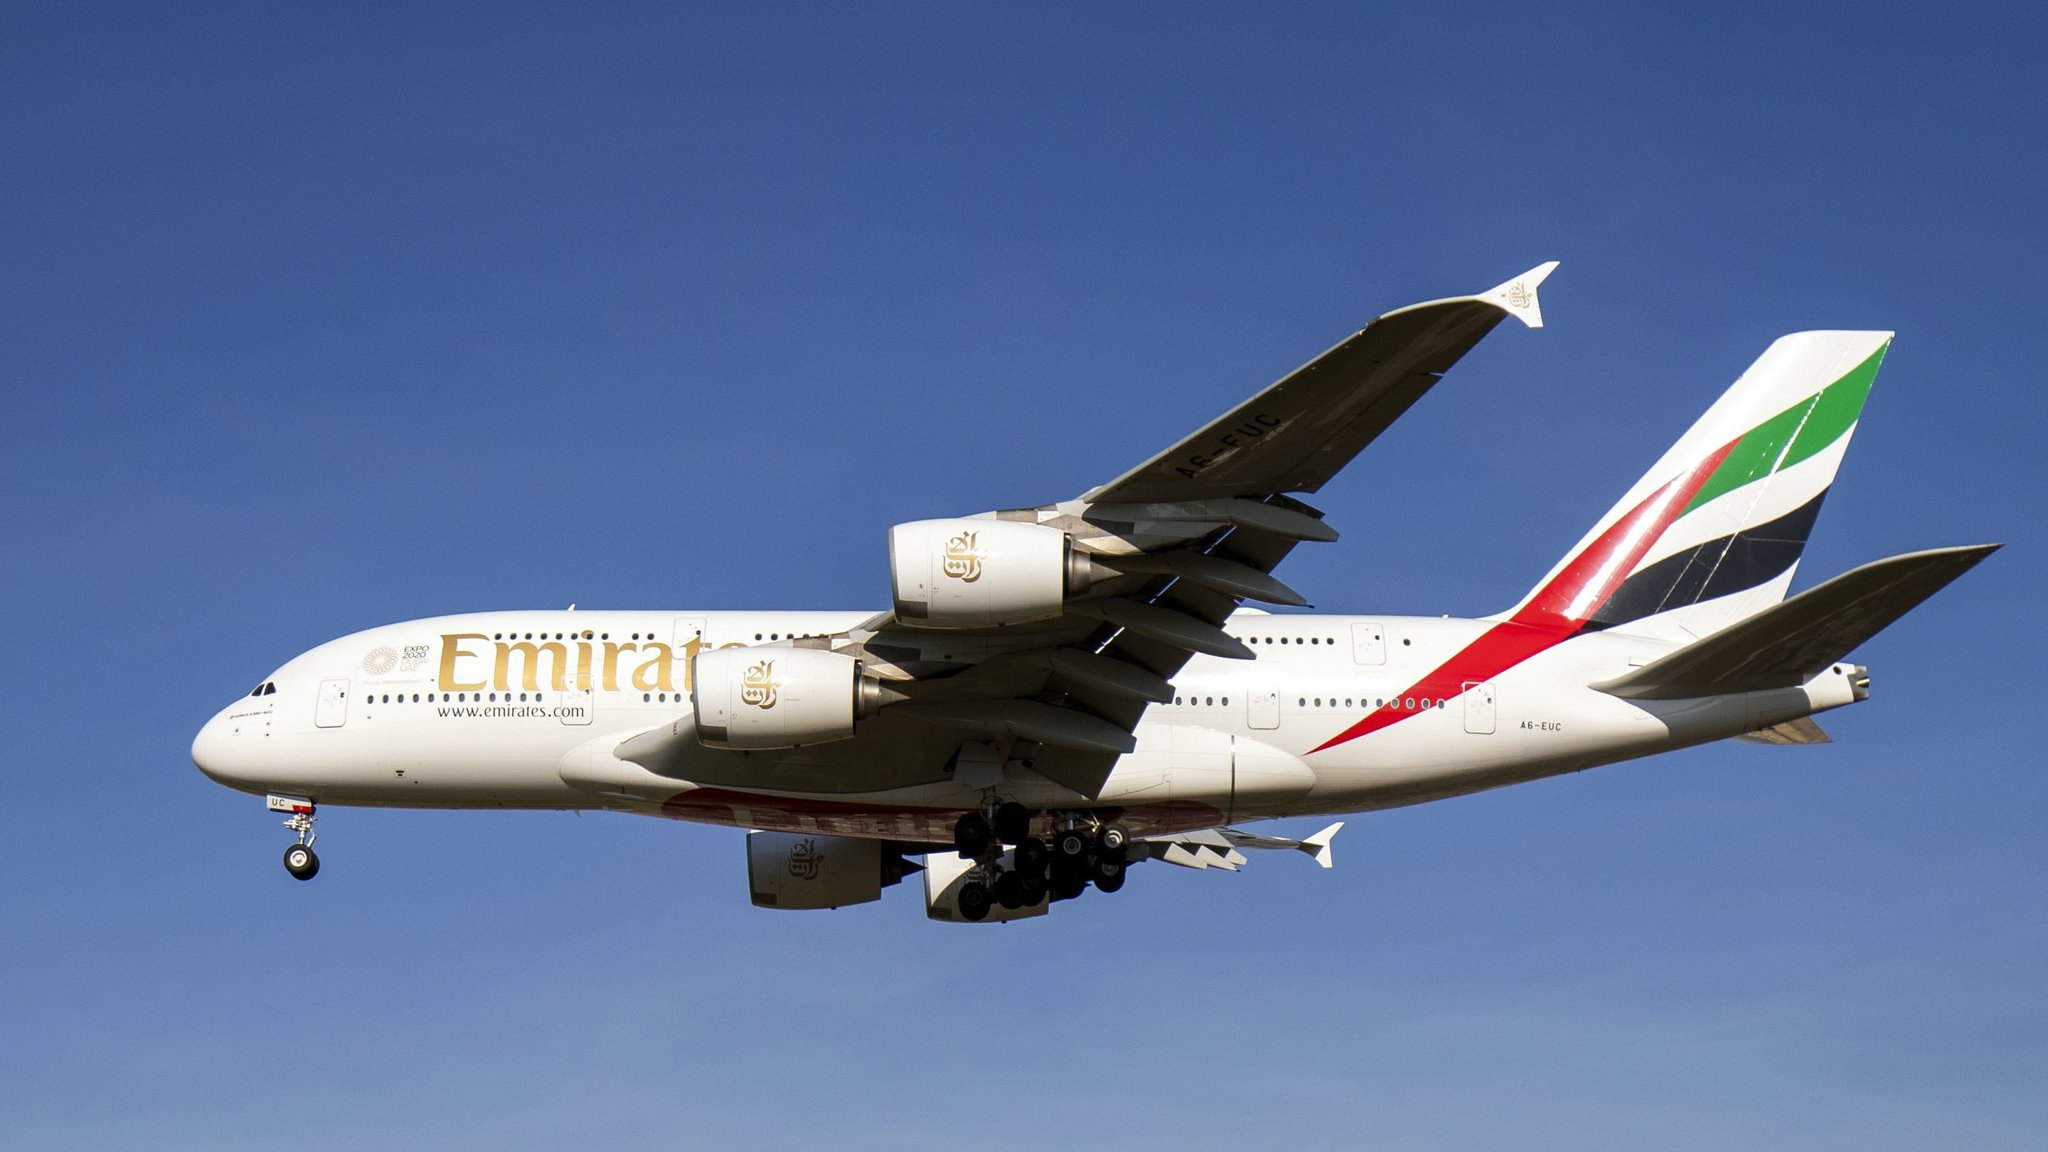 Why the Airbus A380 was grounded   Financial Times